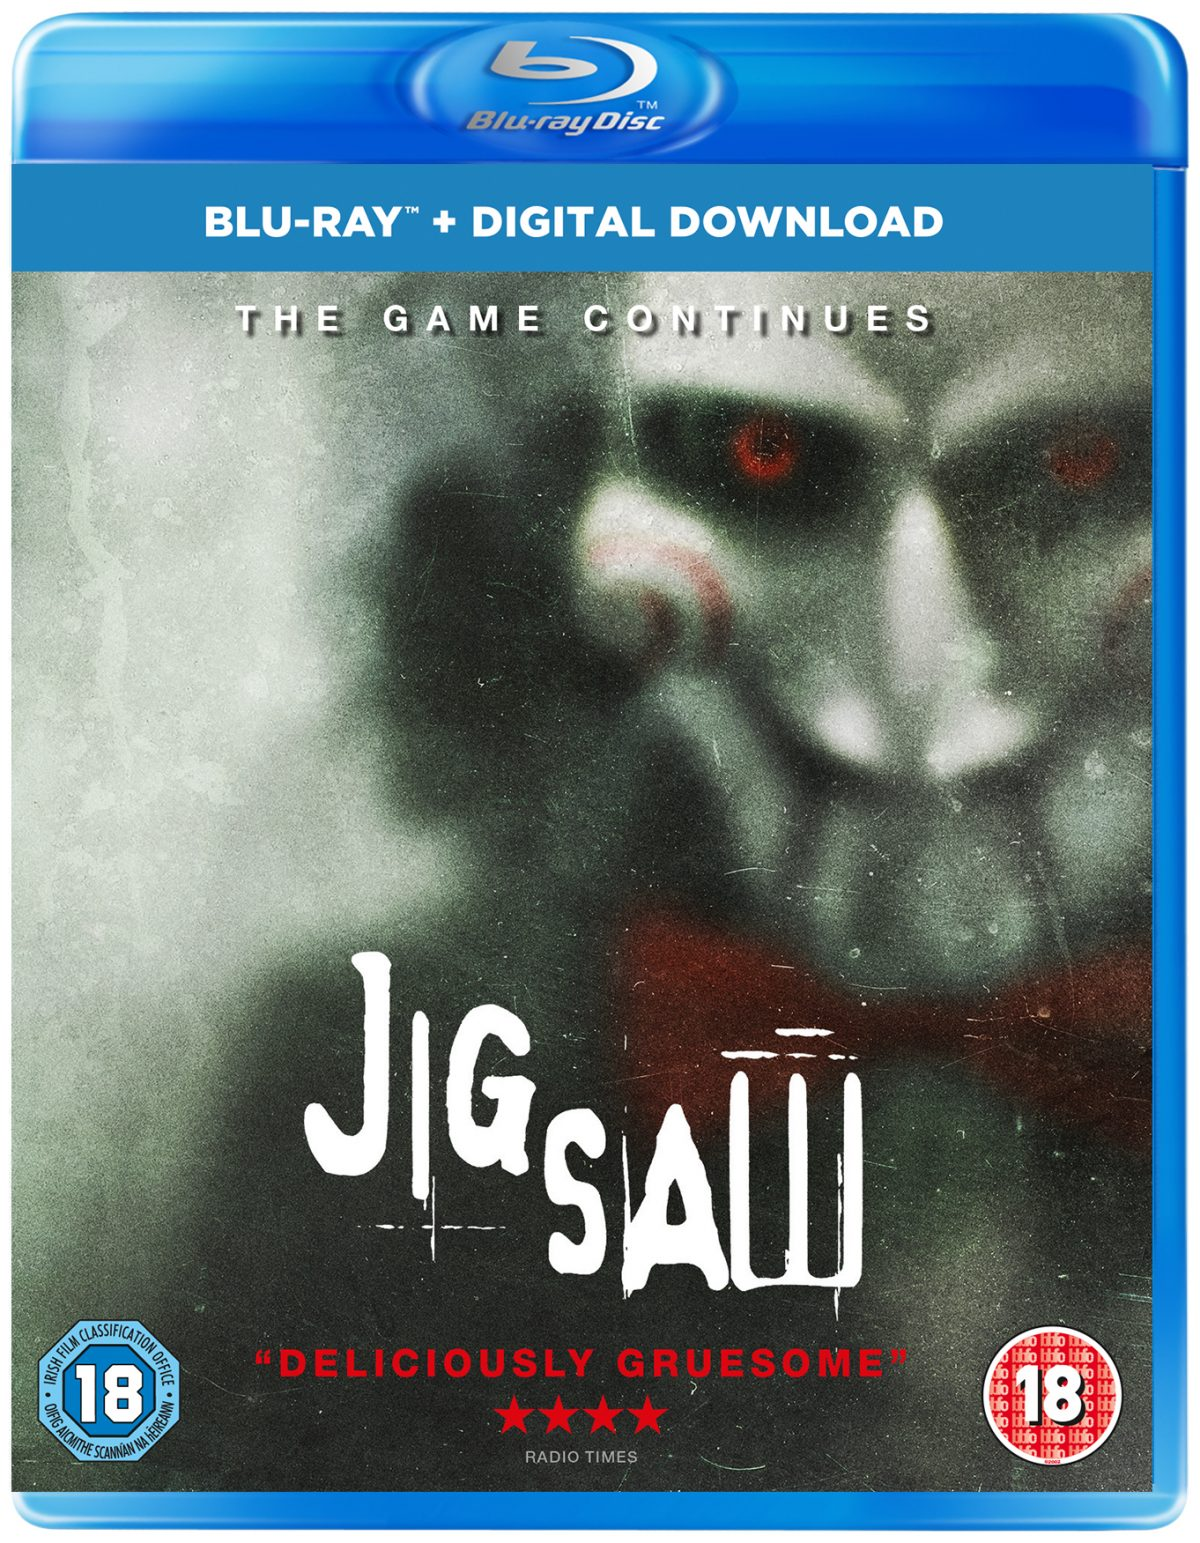 Prepare for the horror of The SAW Chapter in the in multi-player survival horror Dead by Daylight in this new bundle that includes the JIGSAW movie.